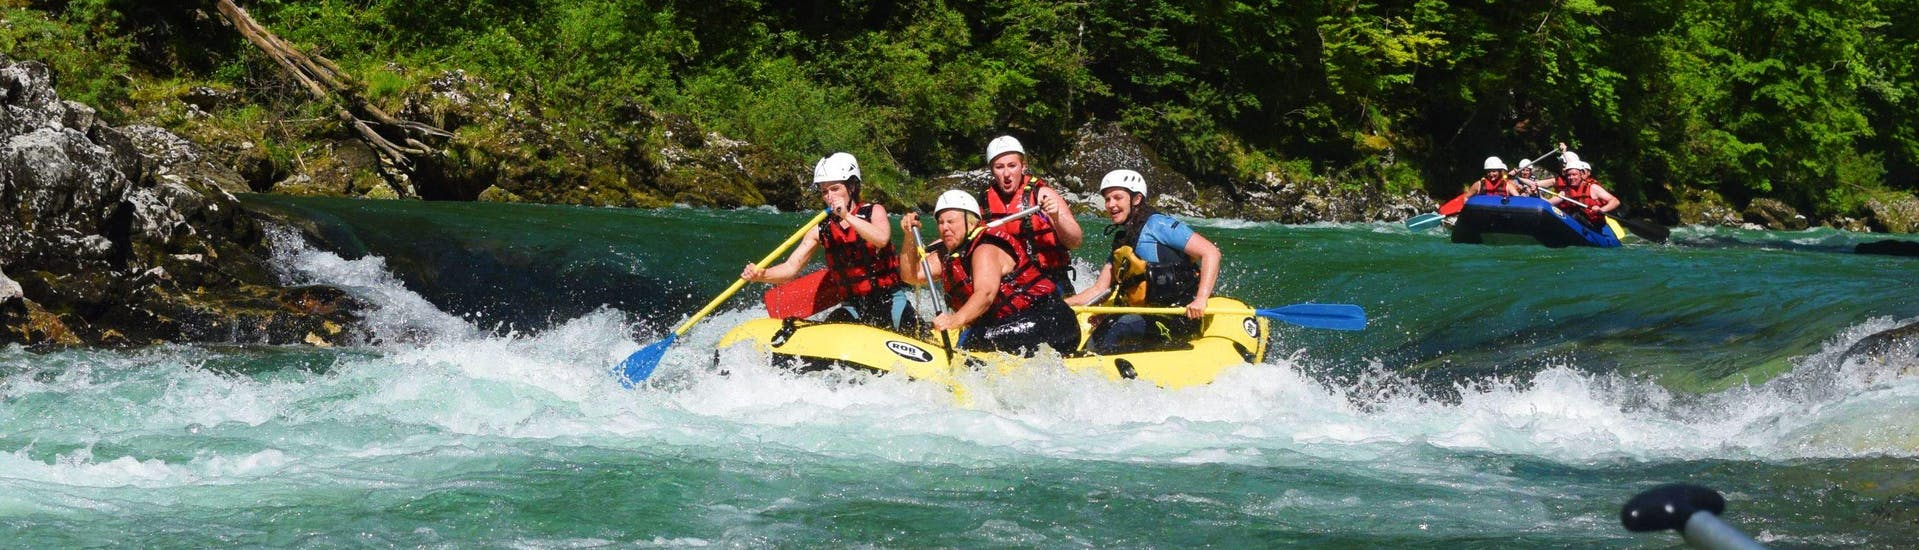 Rafting on the Salza for Sportspeople - Day Tour